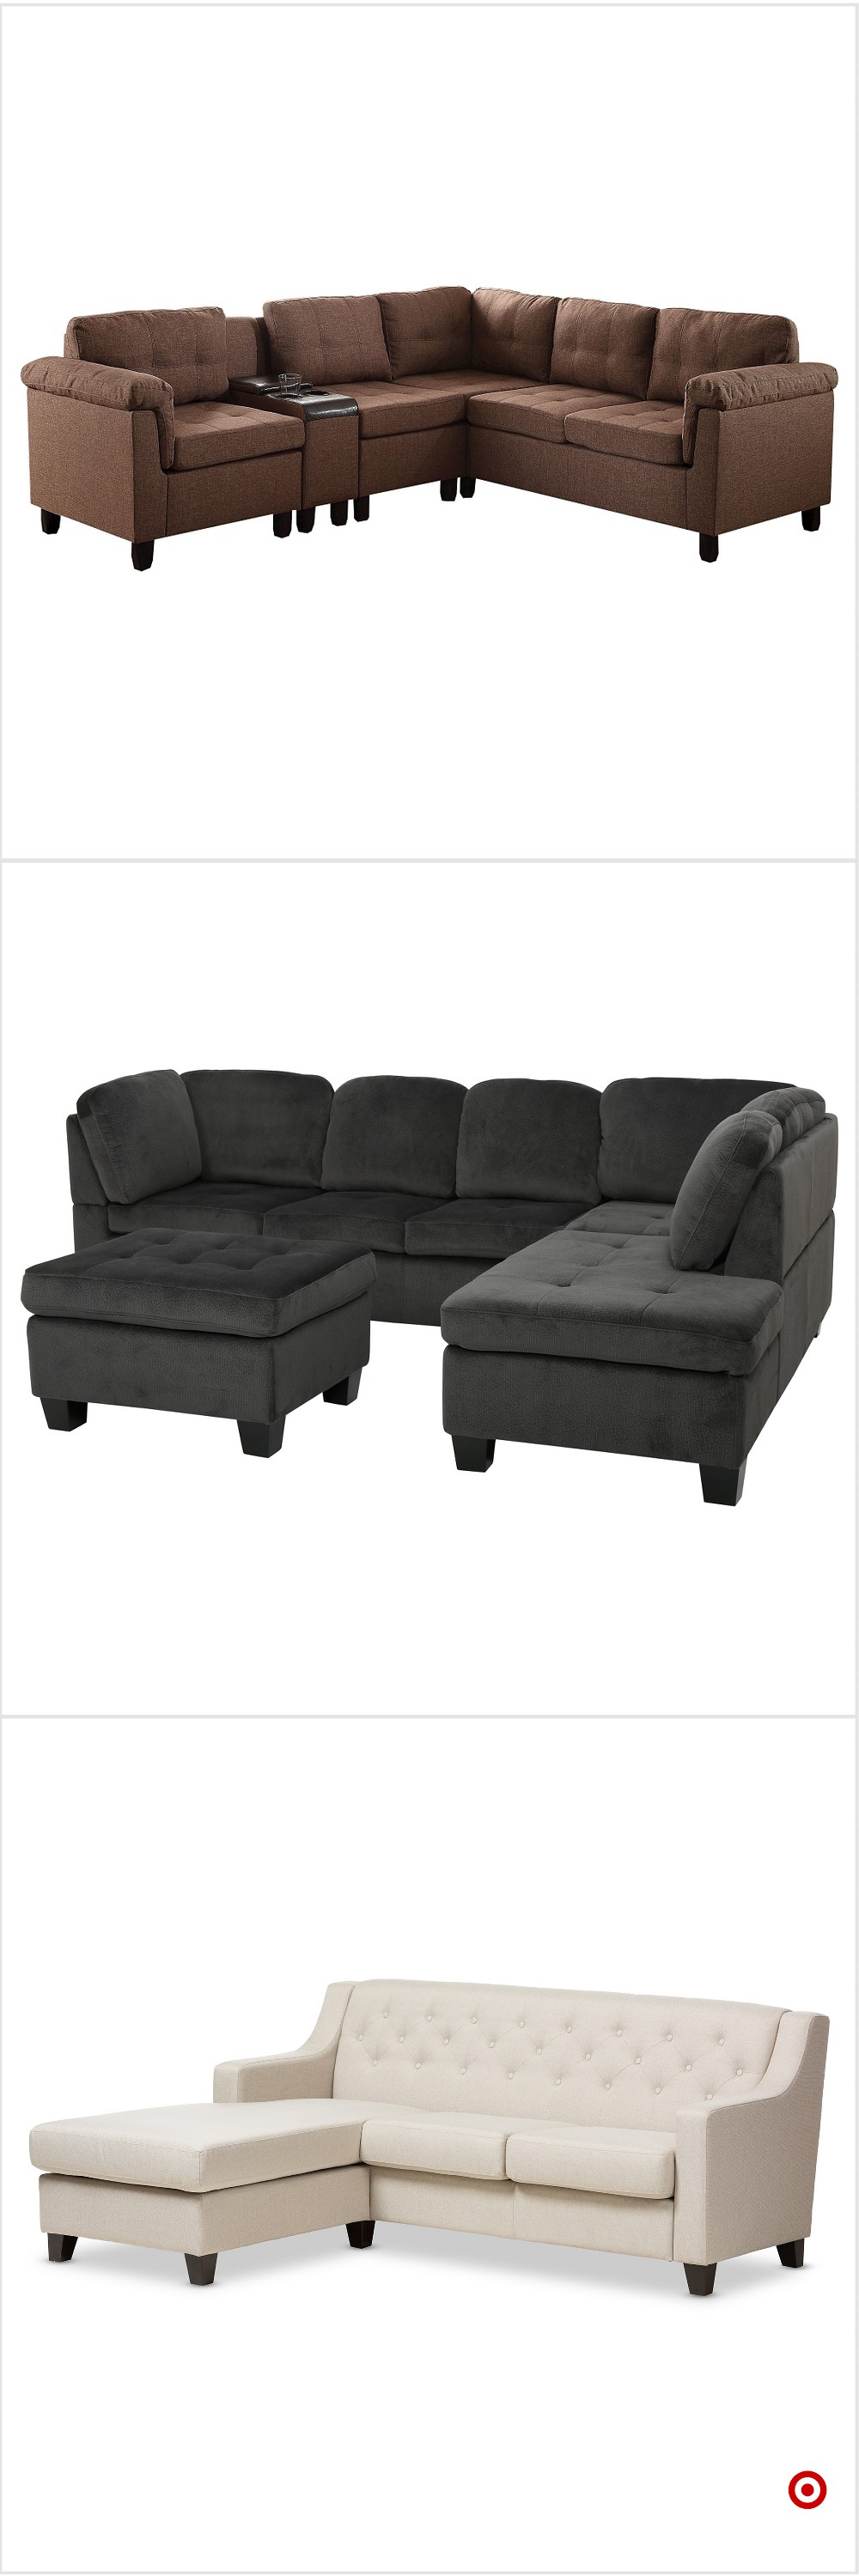 Shop Tar for sectional sofas you will love at great low prices